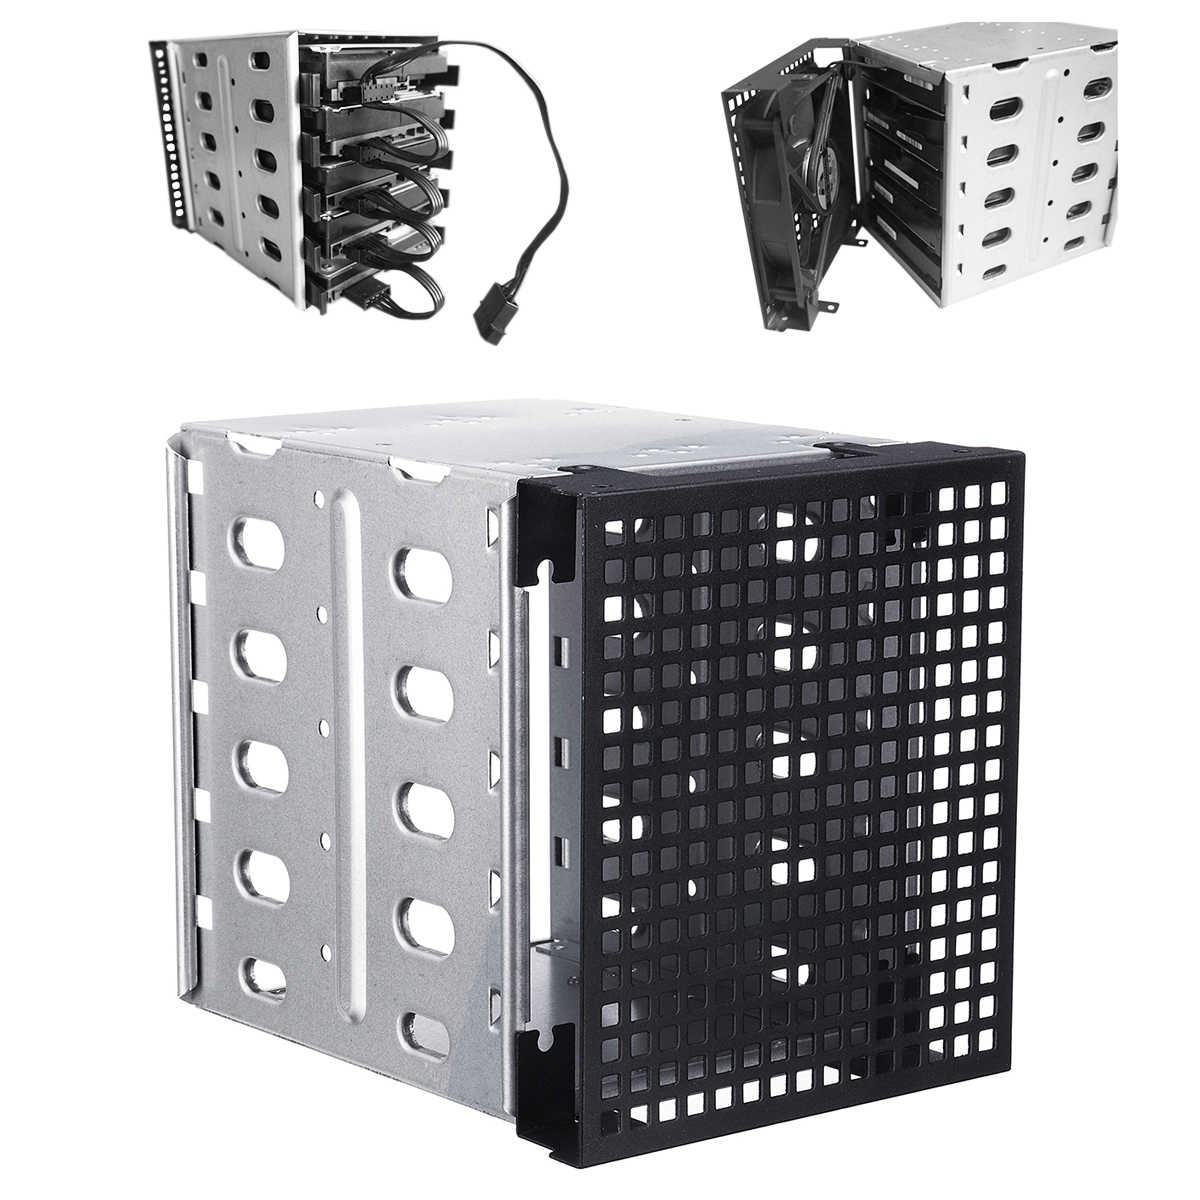 "NEW 5.25"" to 5x 3.5"" SATA SAS HDD Cage Rack Hard Drive Tray Caddy Converter with Fan Space"